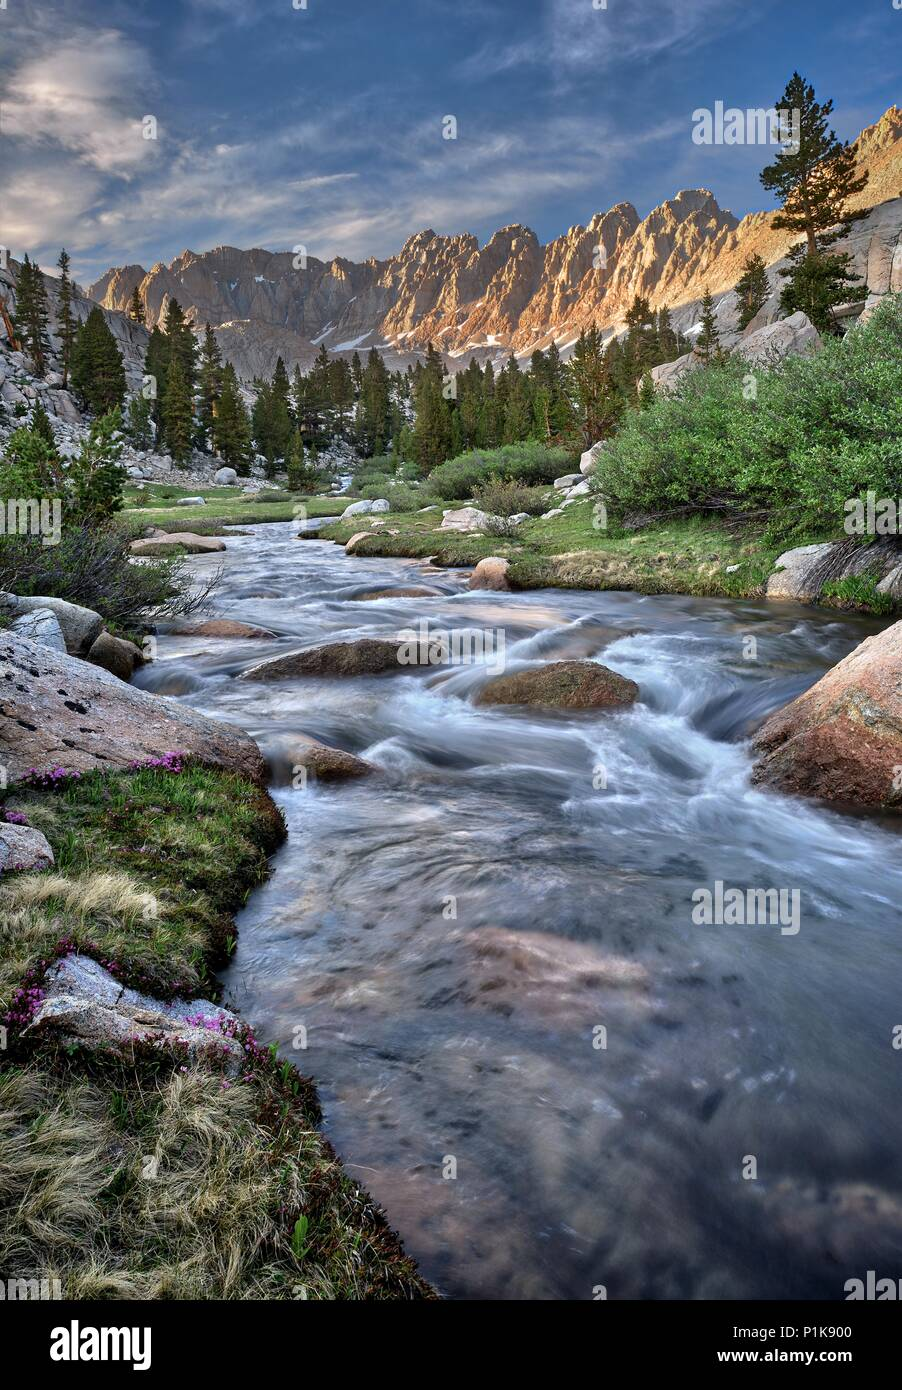 Rock Creek in the Miter Basin, Sequoia National Park, California, America, USA Stock Photo